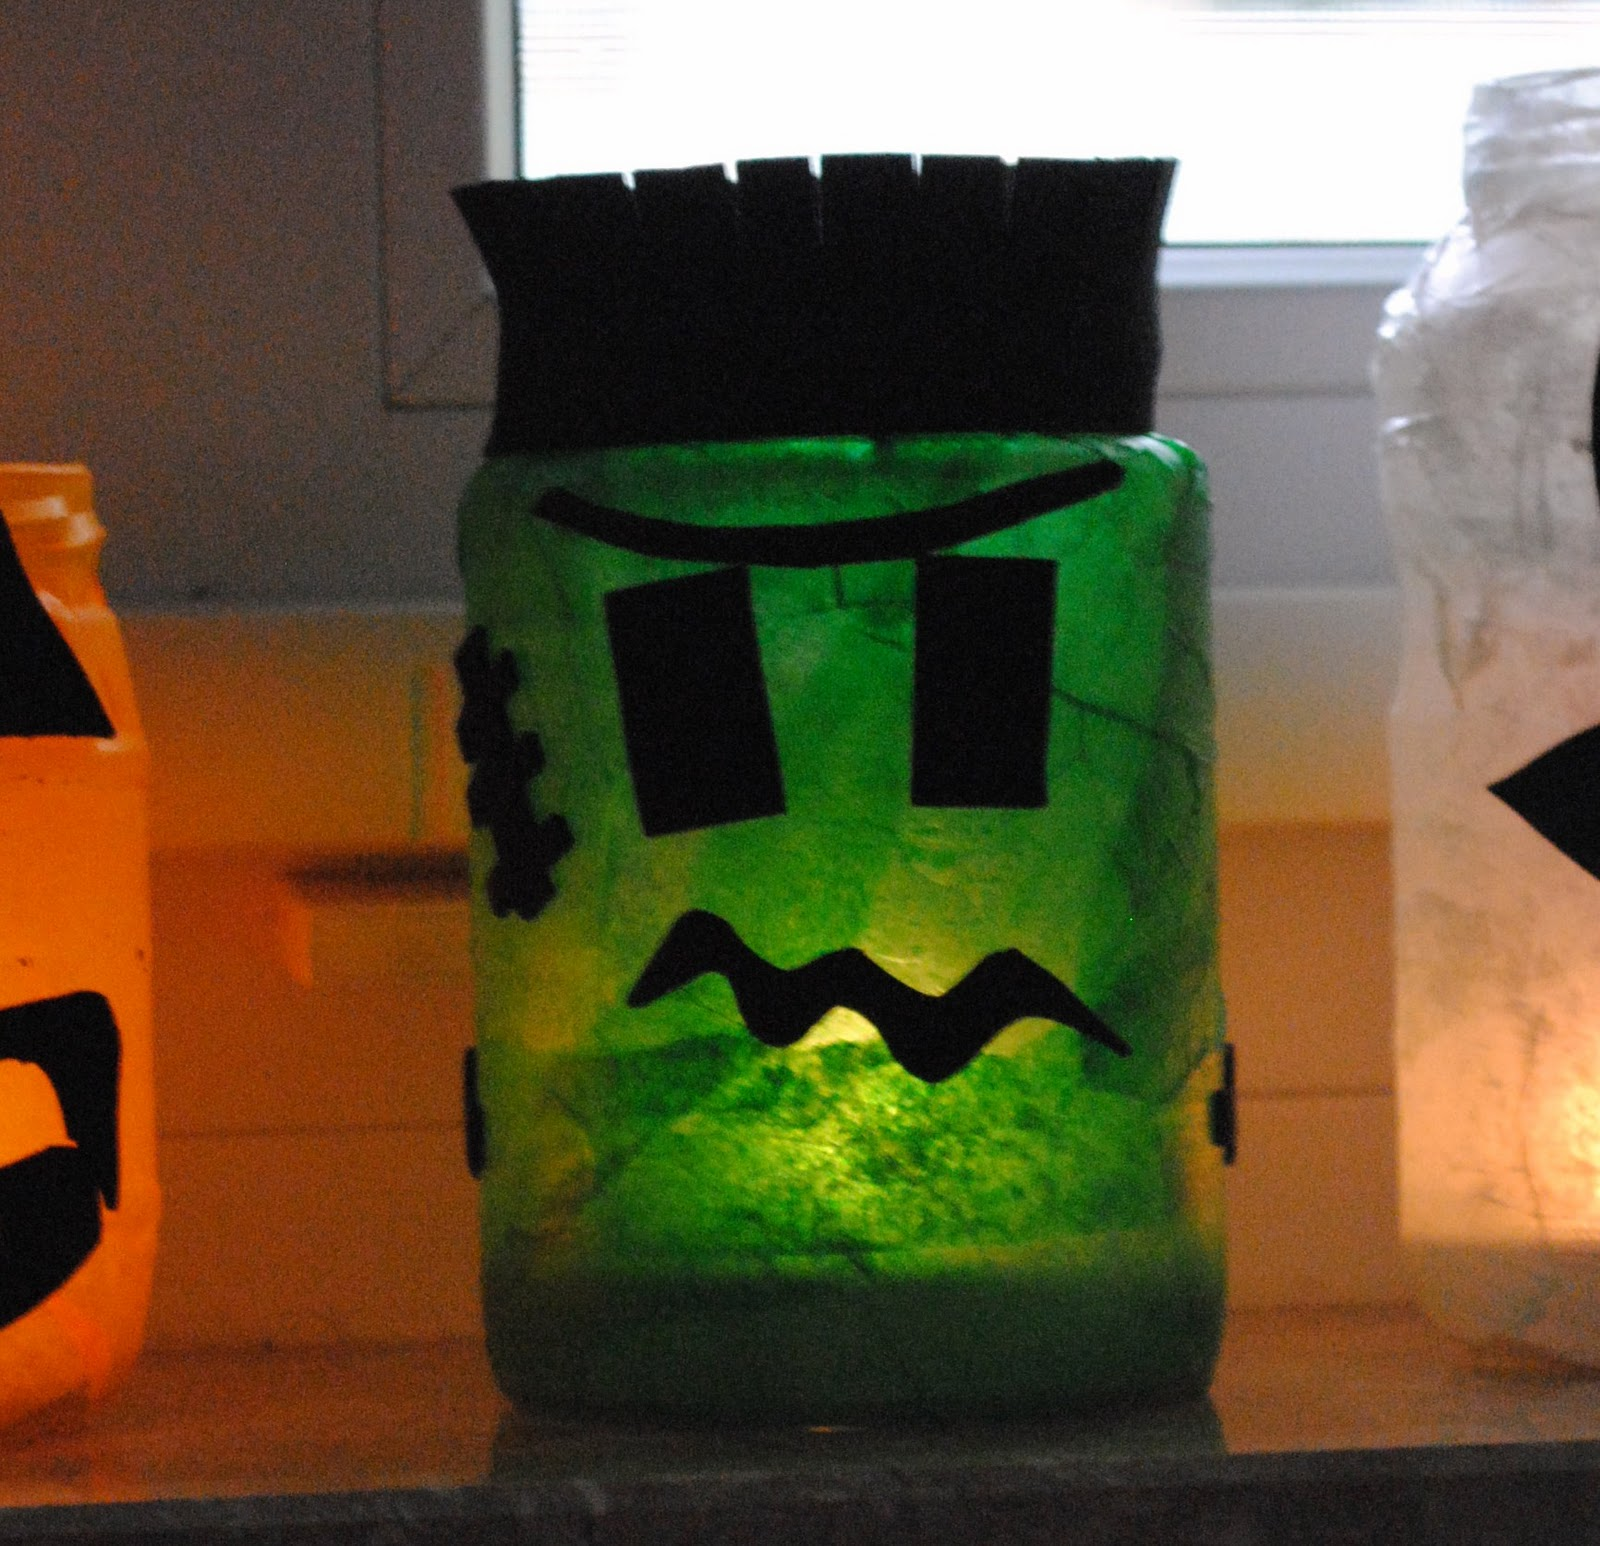 halloween monster decorations upcycle mod podge luminaries kid crafts halloween decorations halloween boy crafts